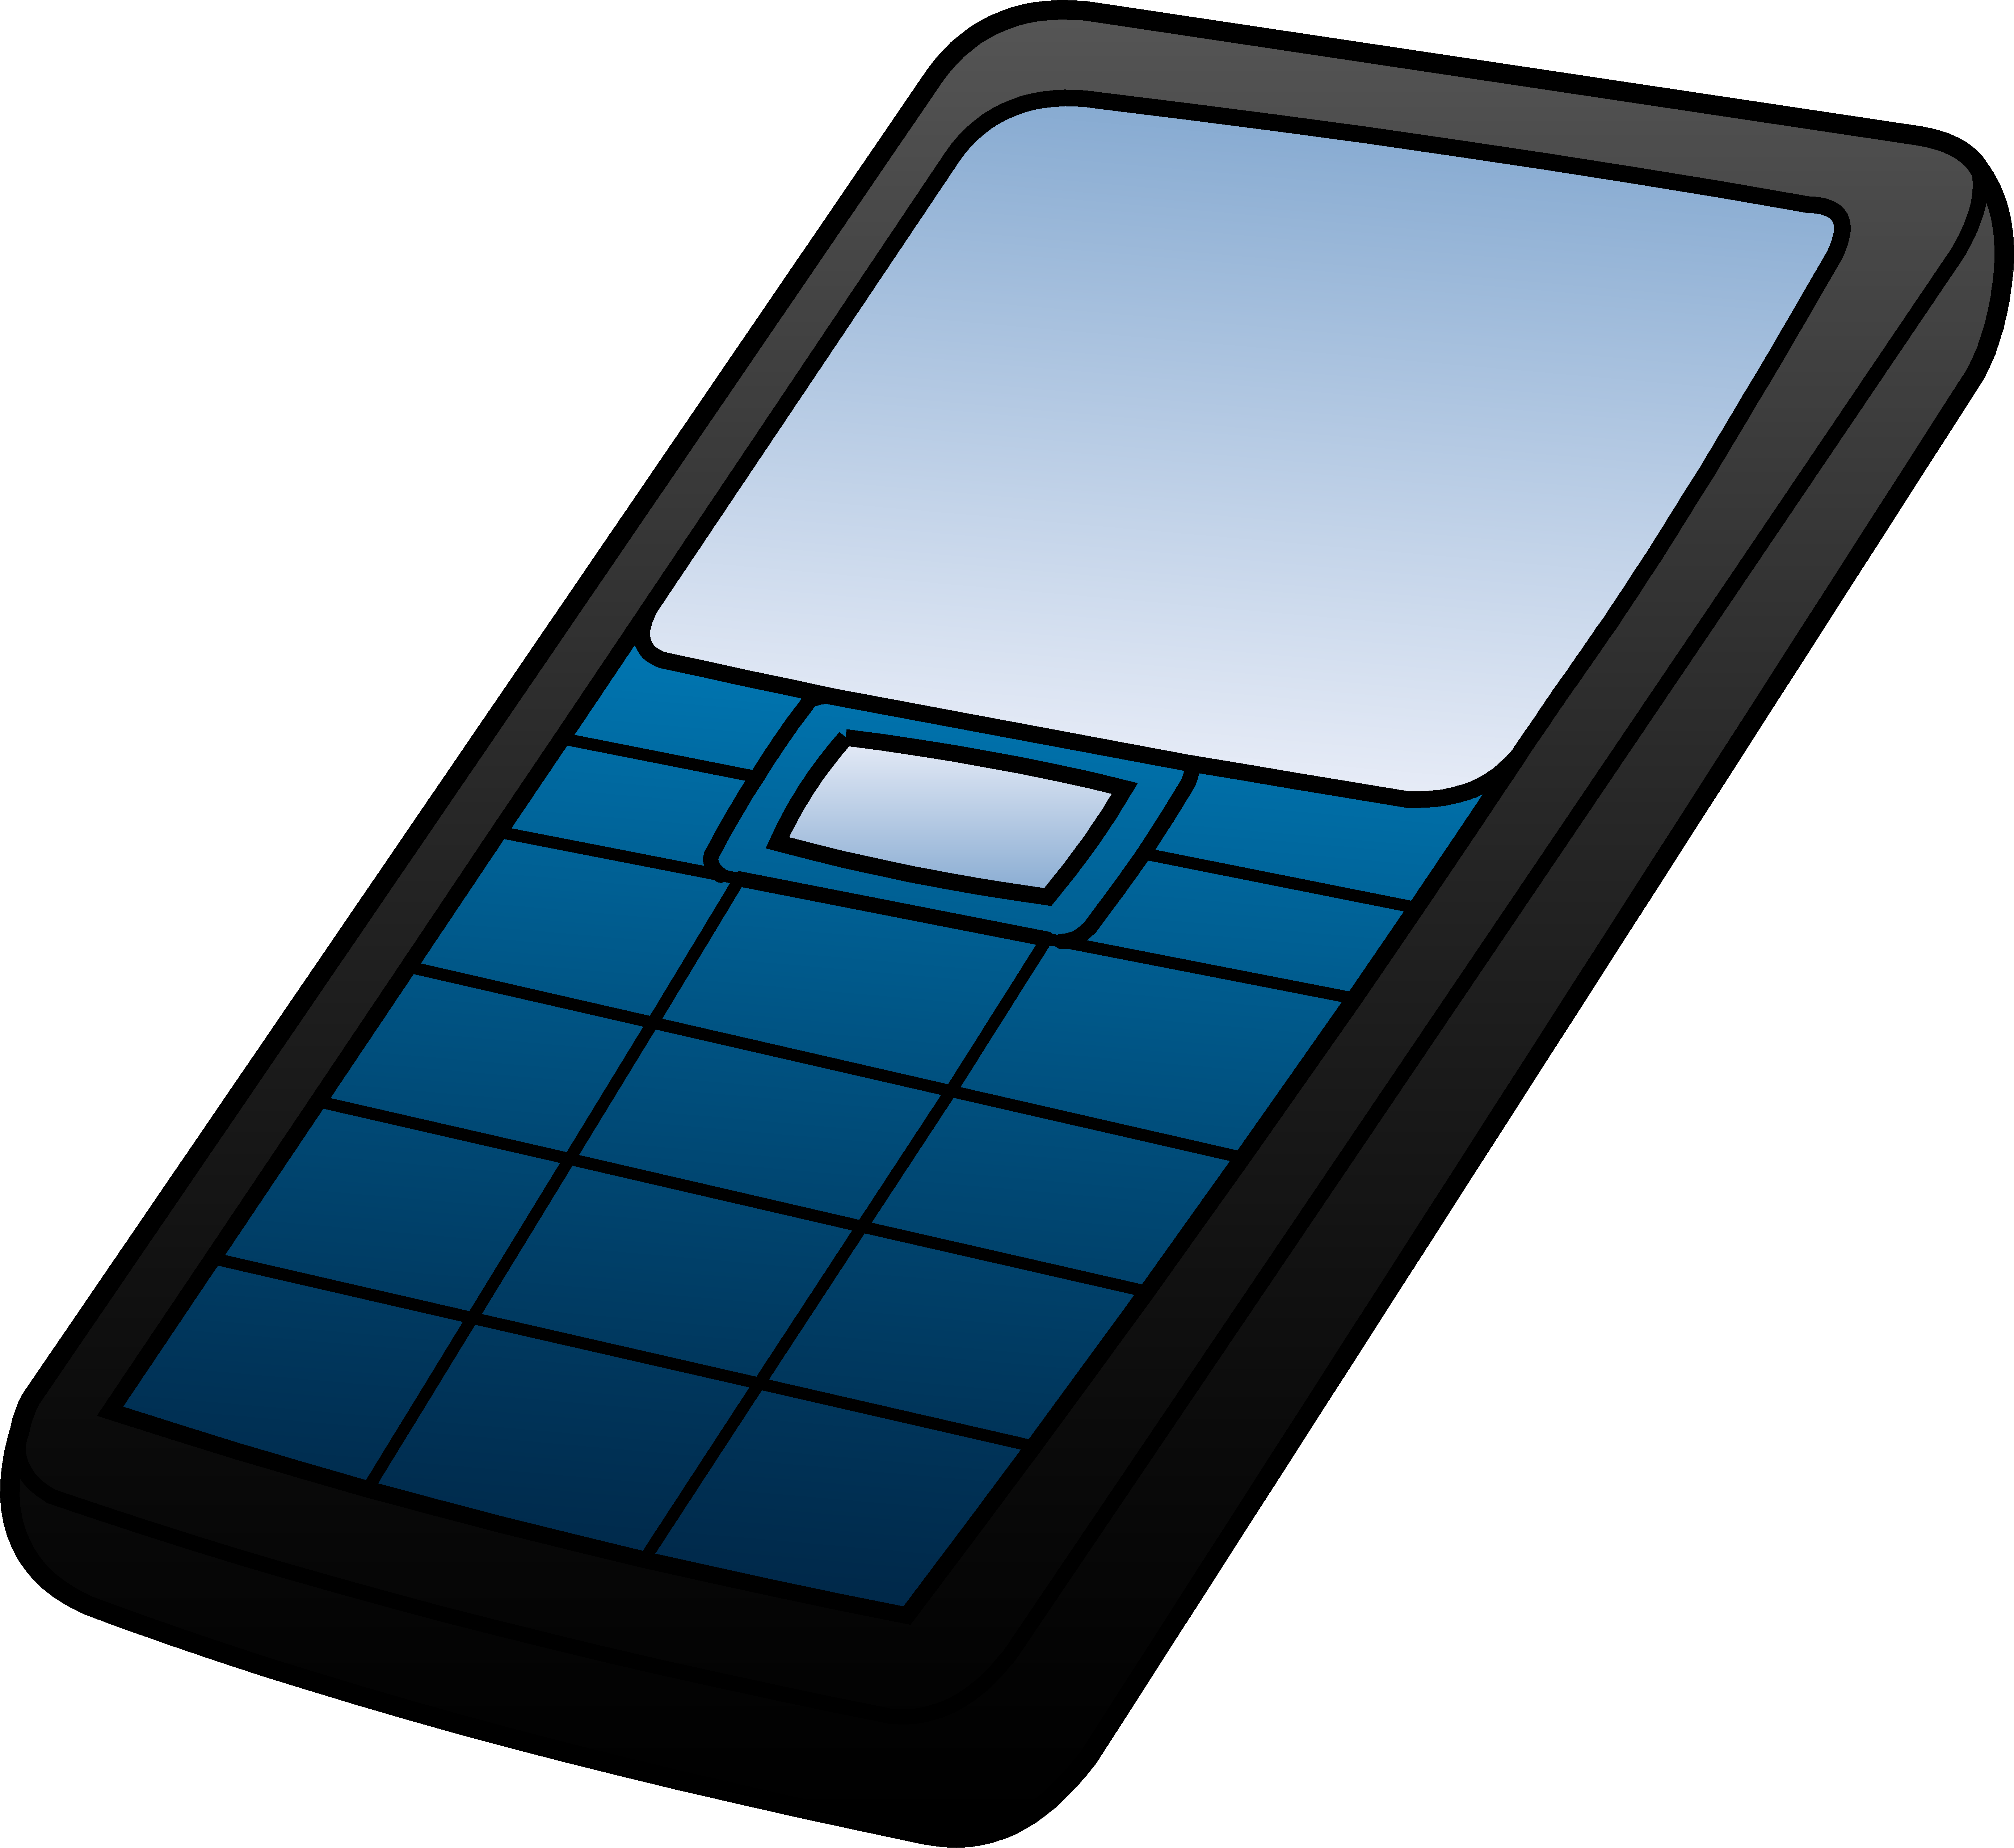 5563x5105 Blue And Black Cell Phone Design